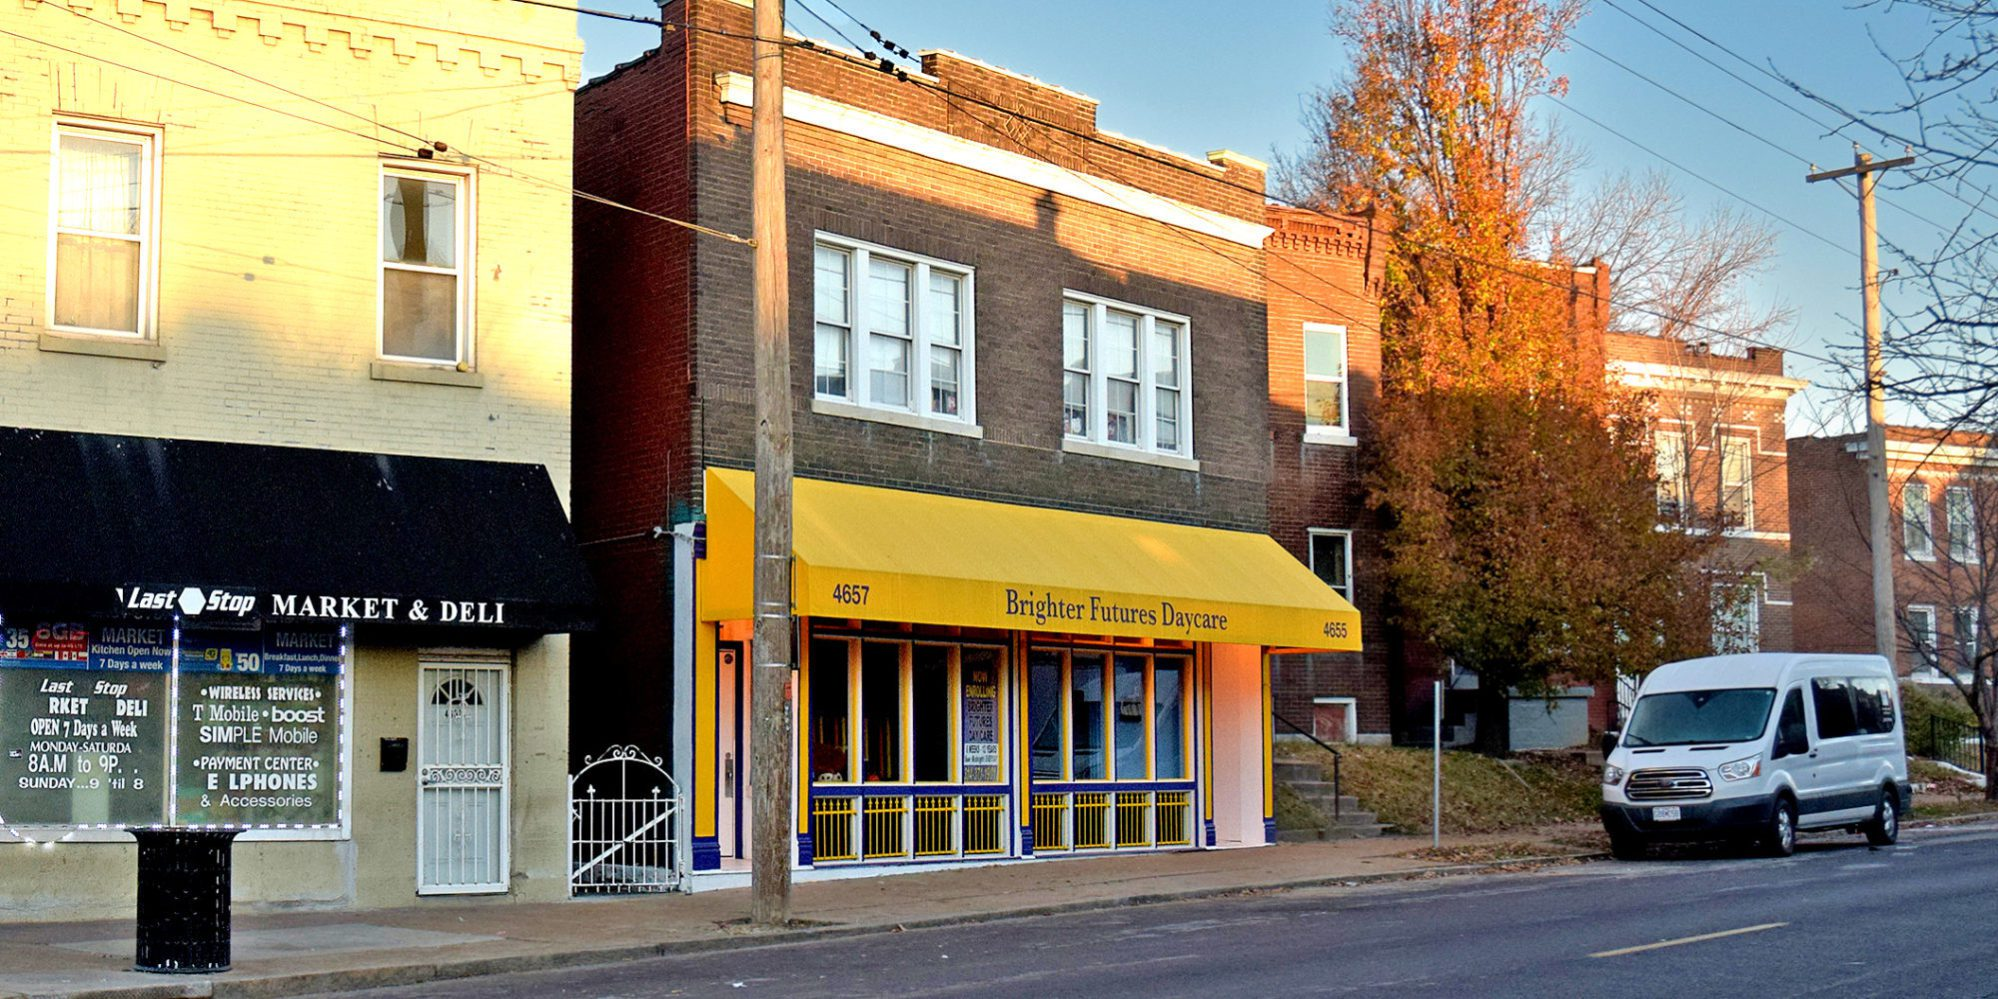 Brighter Futures Day Care on Virginia Avenue in Dutchtown, St. Louis, MO.